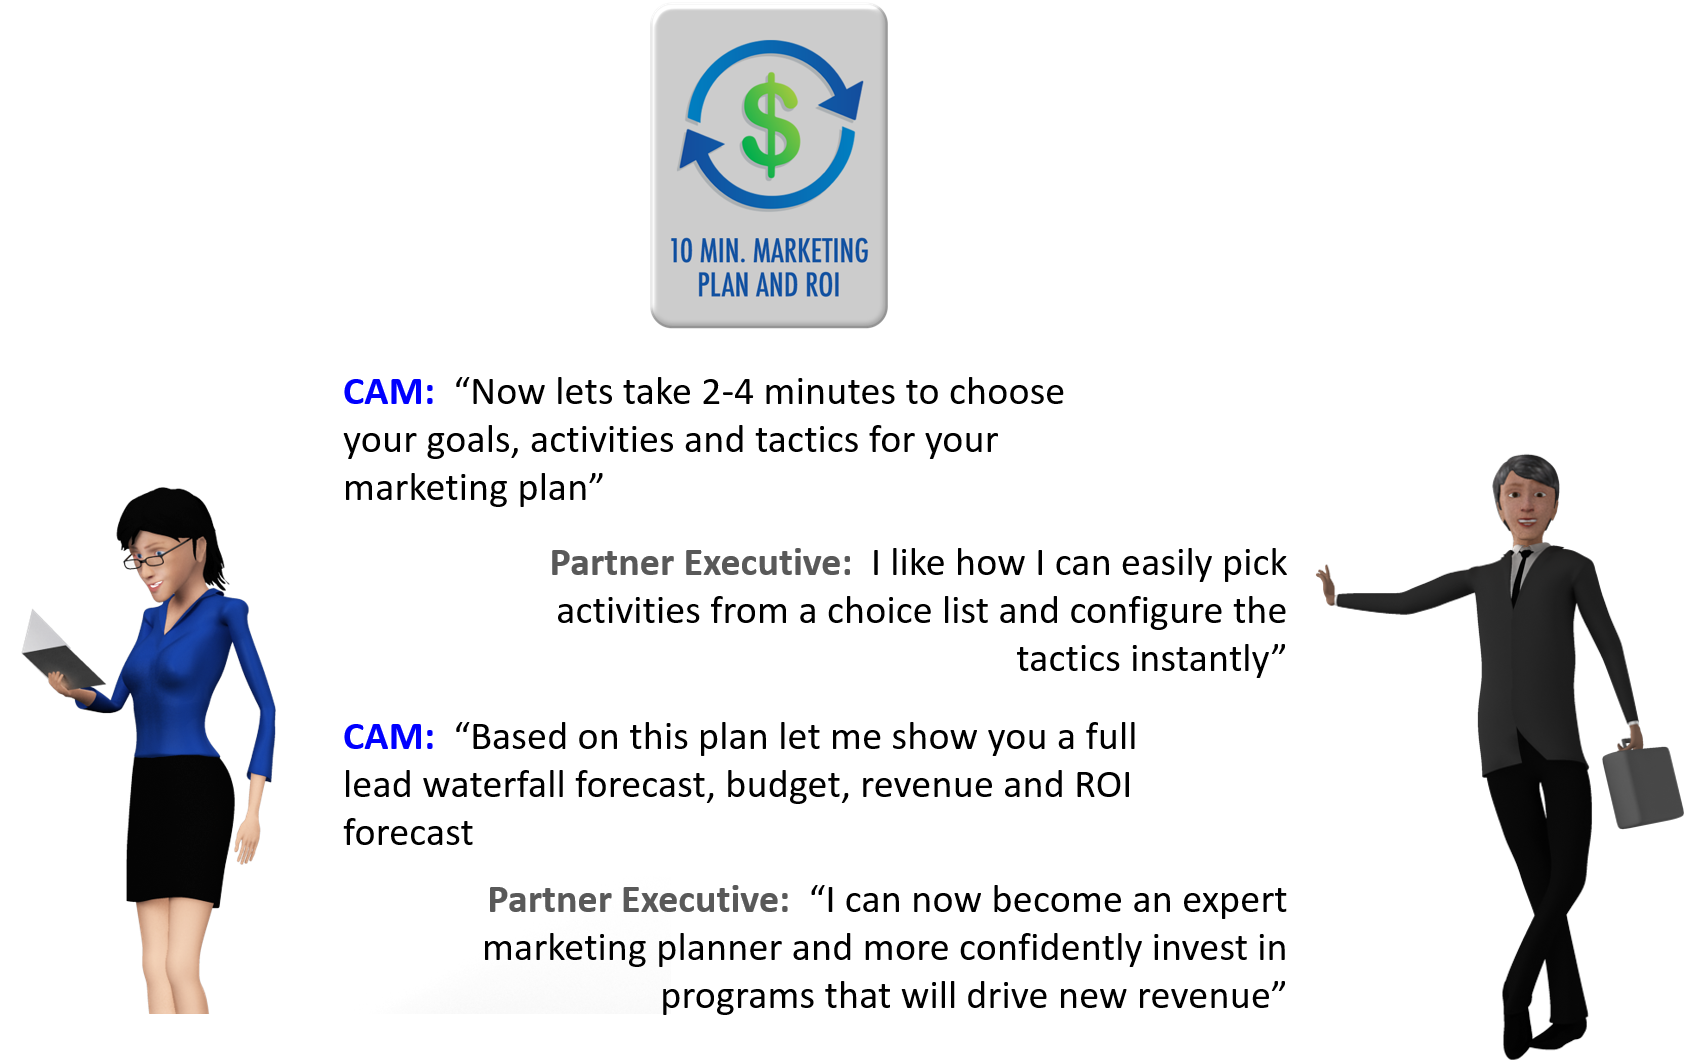 Partner Marketing Plan